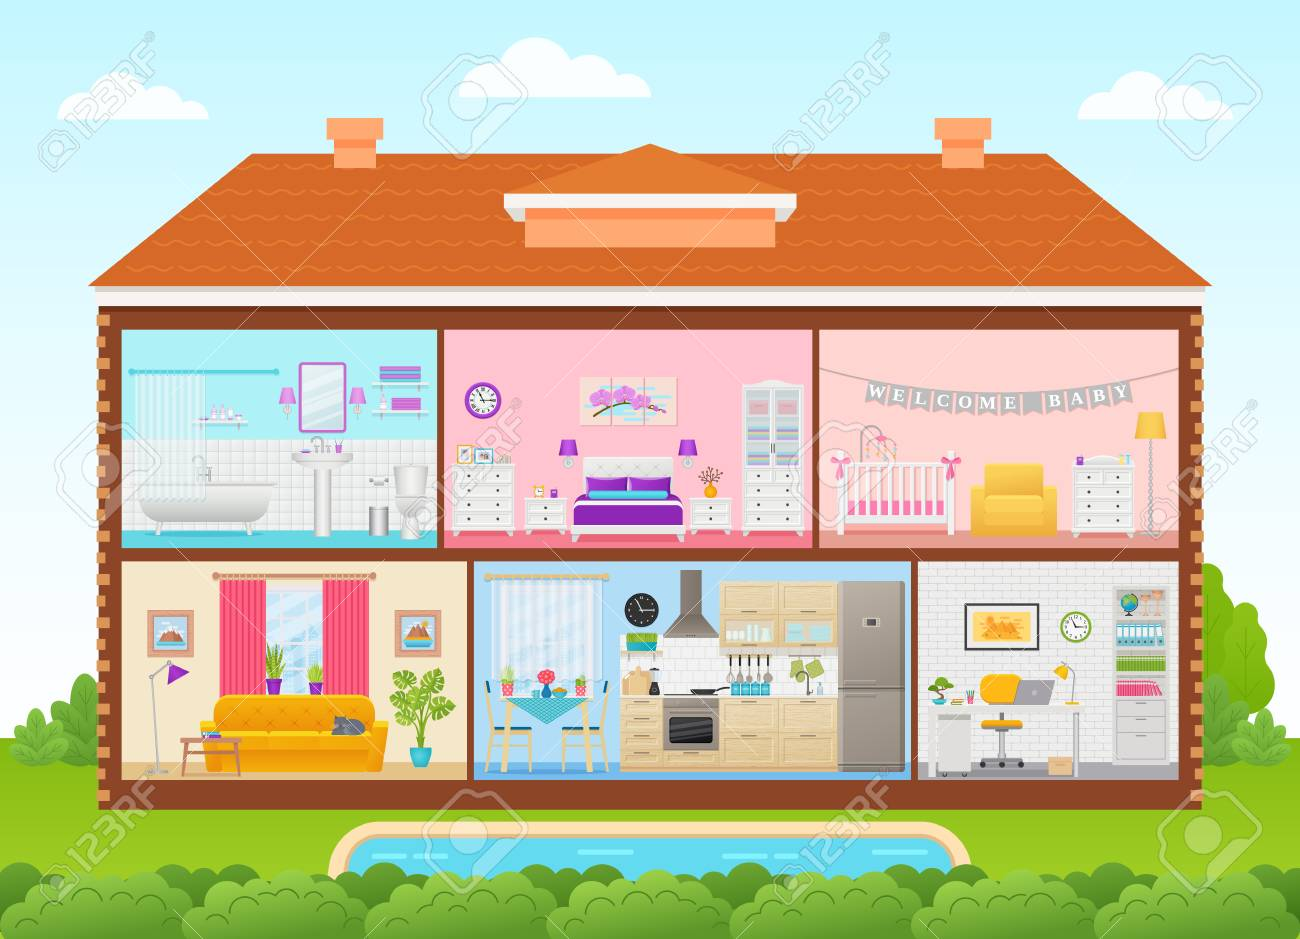 House Interior Vector House Inside In Cut With Roof Pool Royalty Free Cliparts Vectors And Stock Illustration Image 110398738